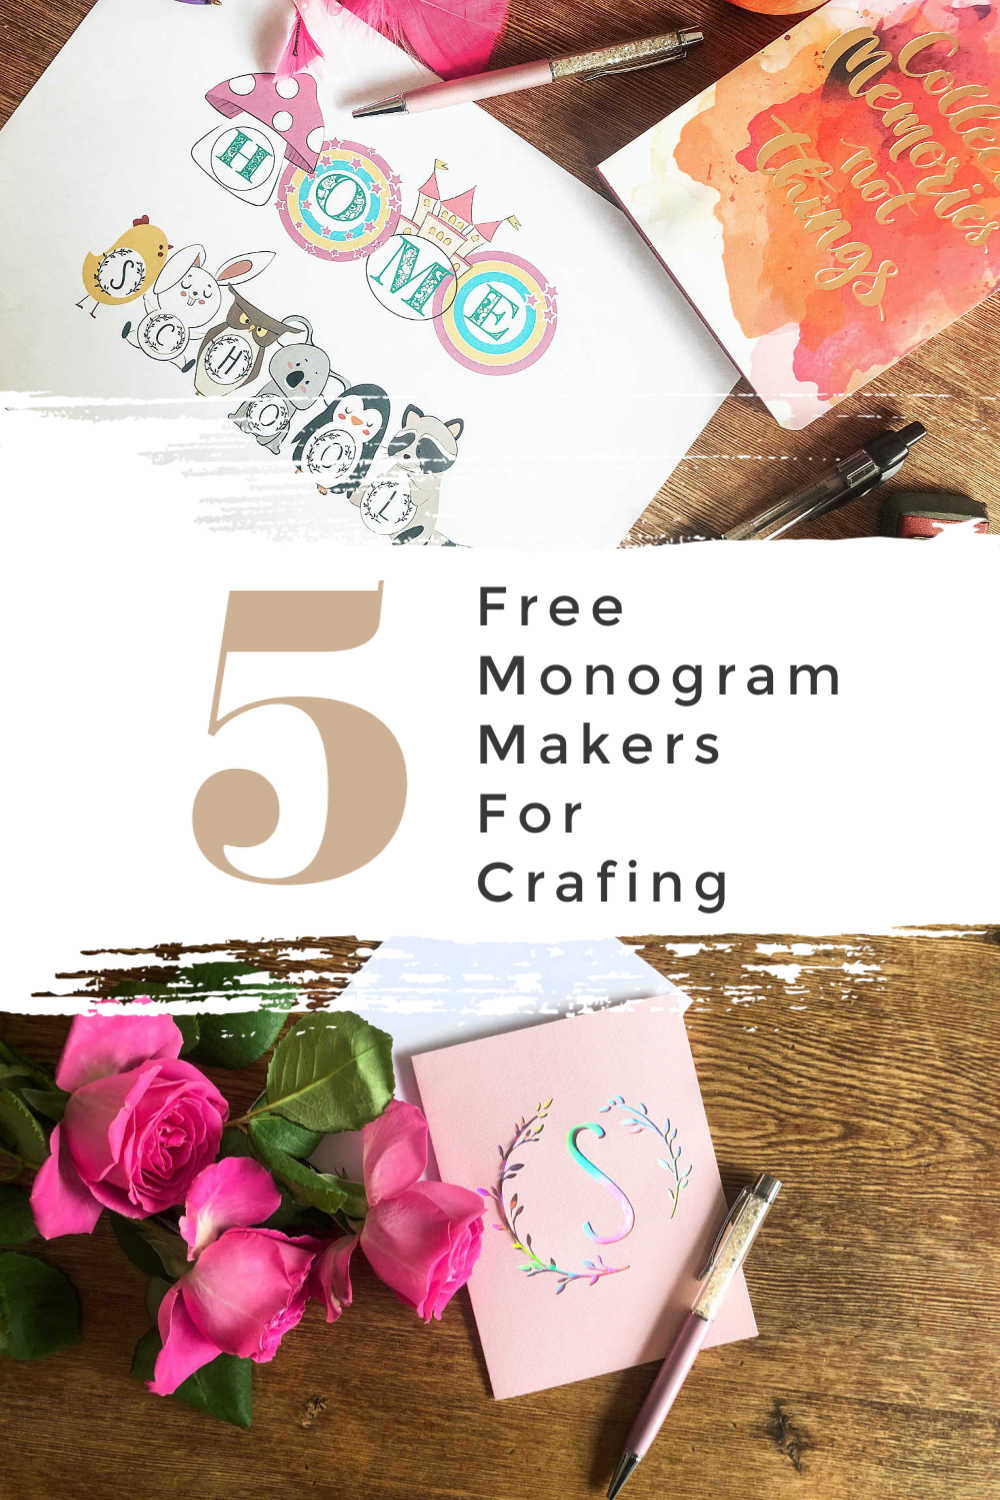 5 free monogram makers for crafting